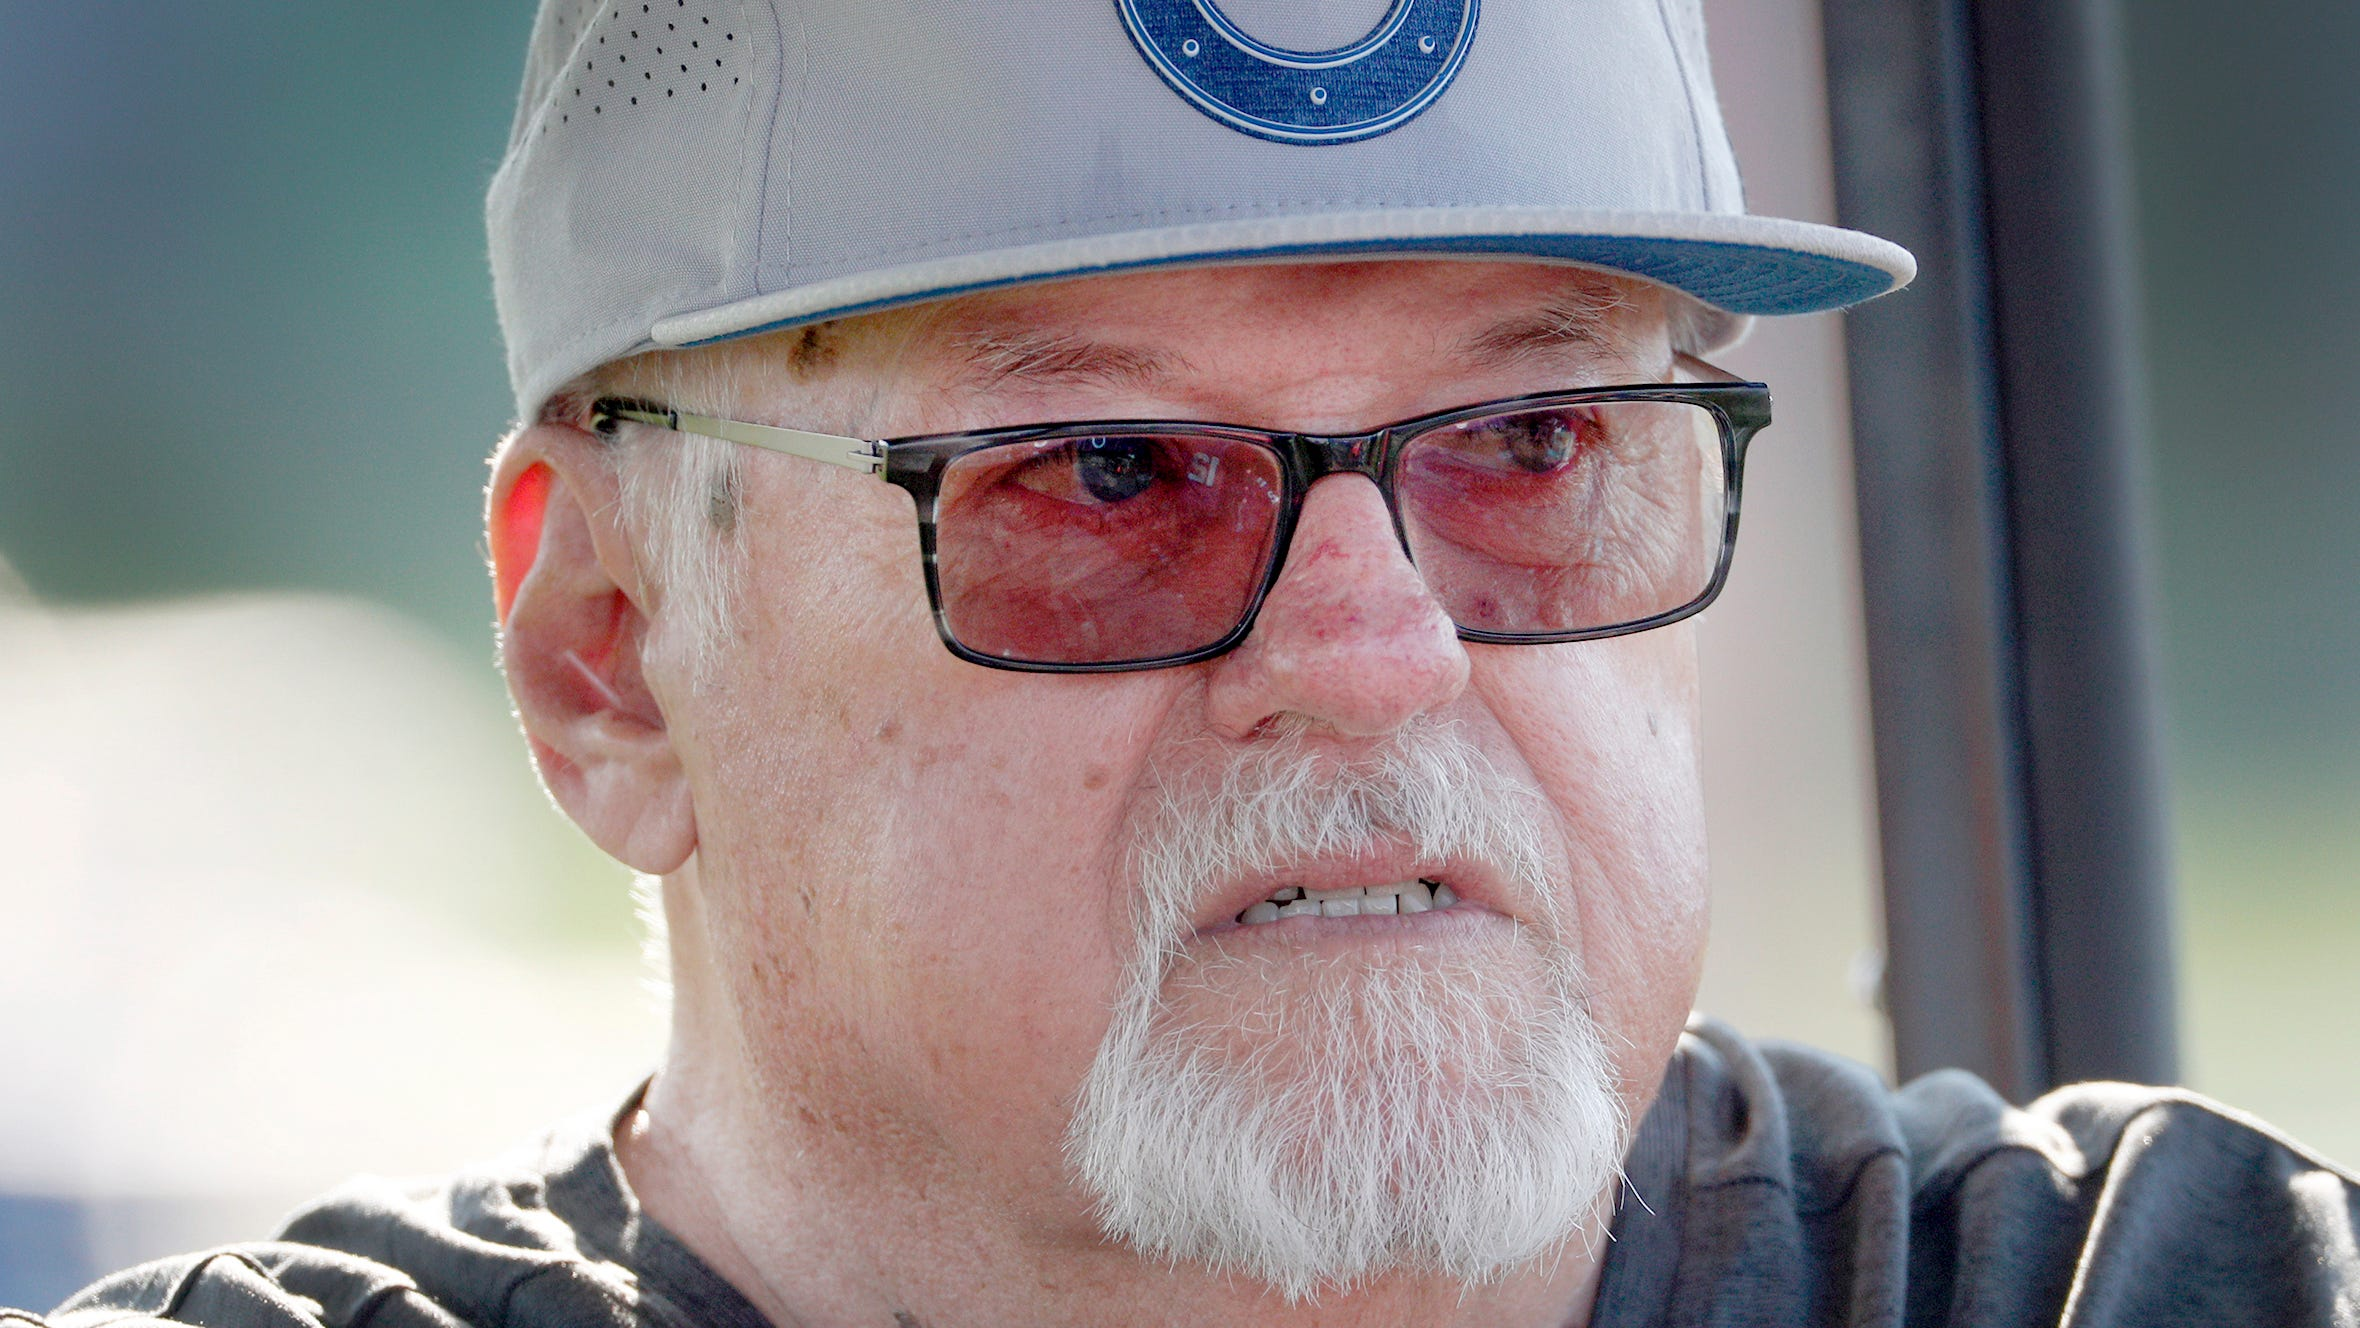 Indianapolis Colts play-by-play man Bob Lamey retires after 31 seasons